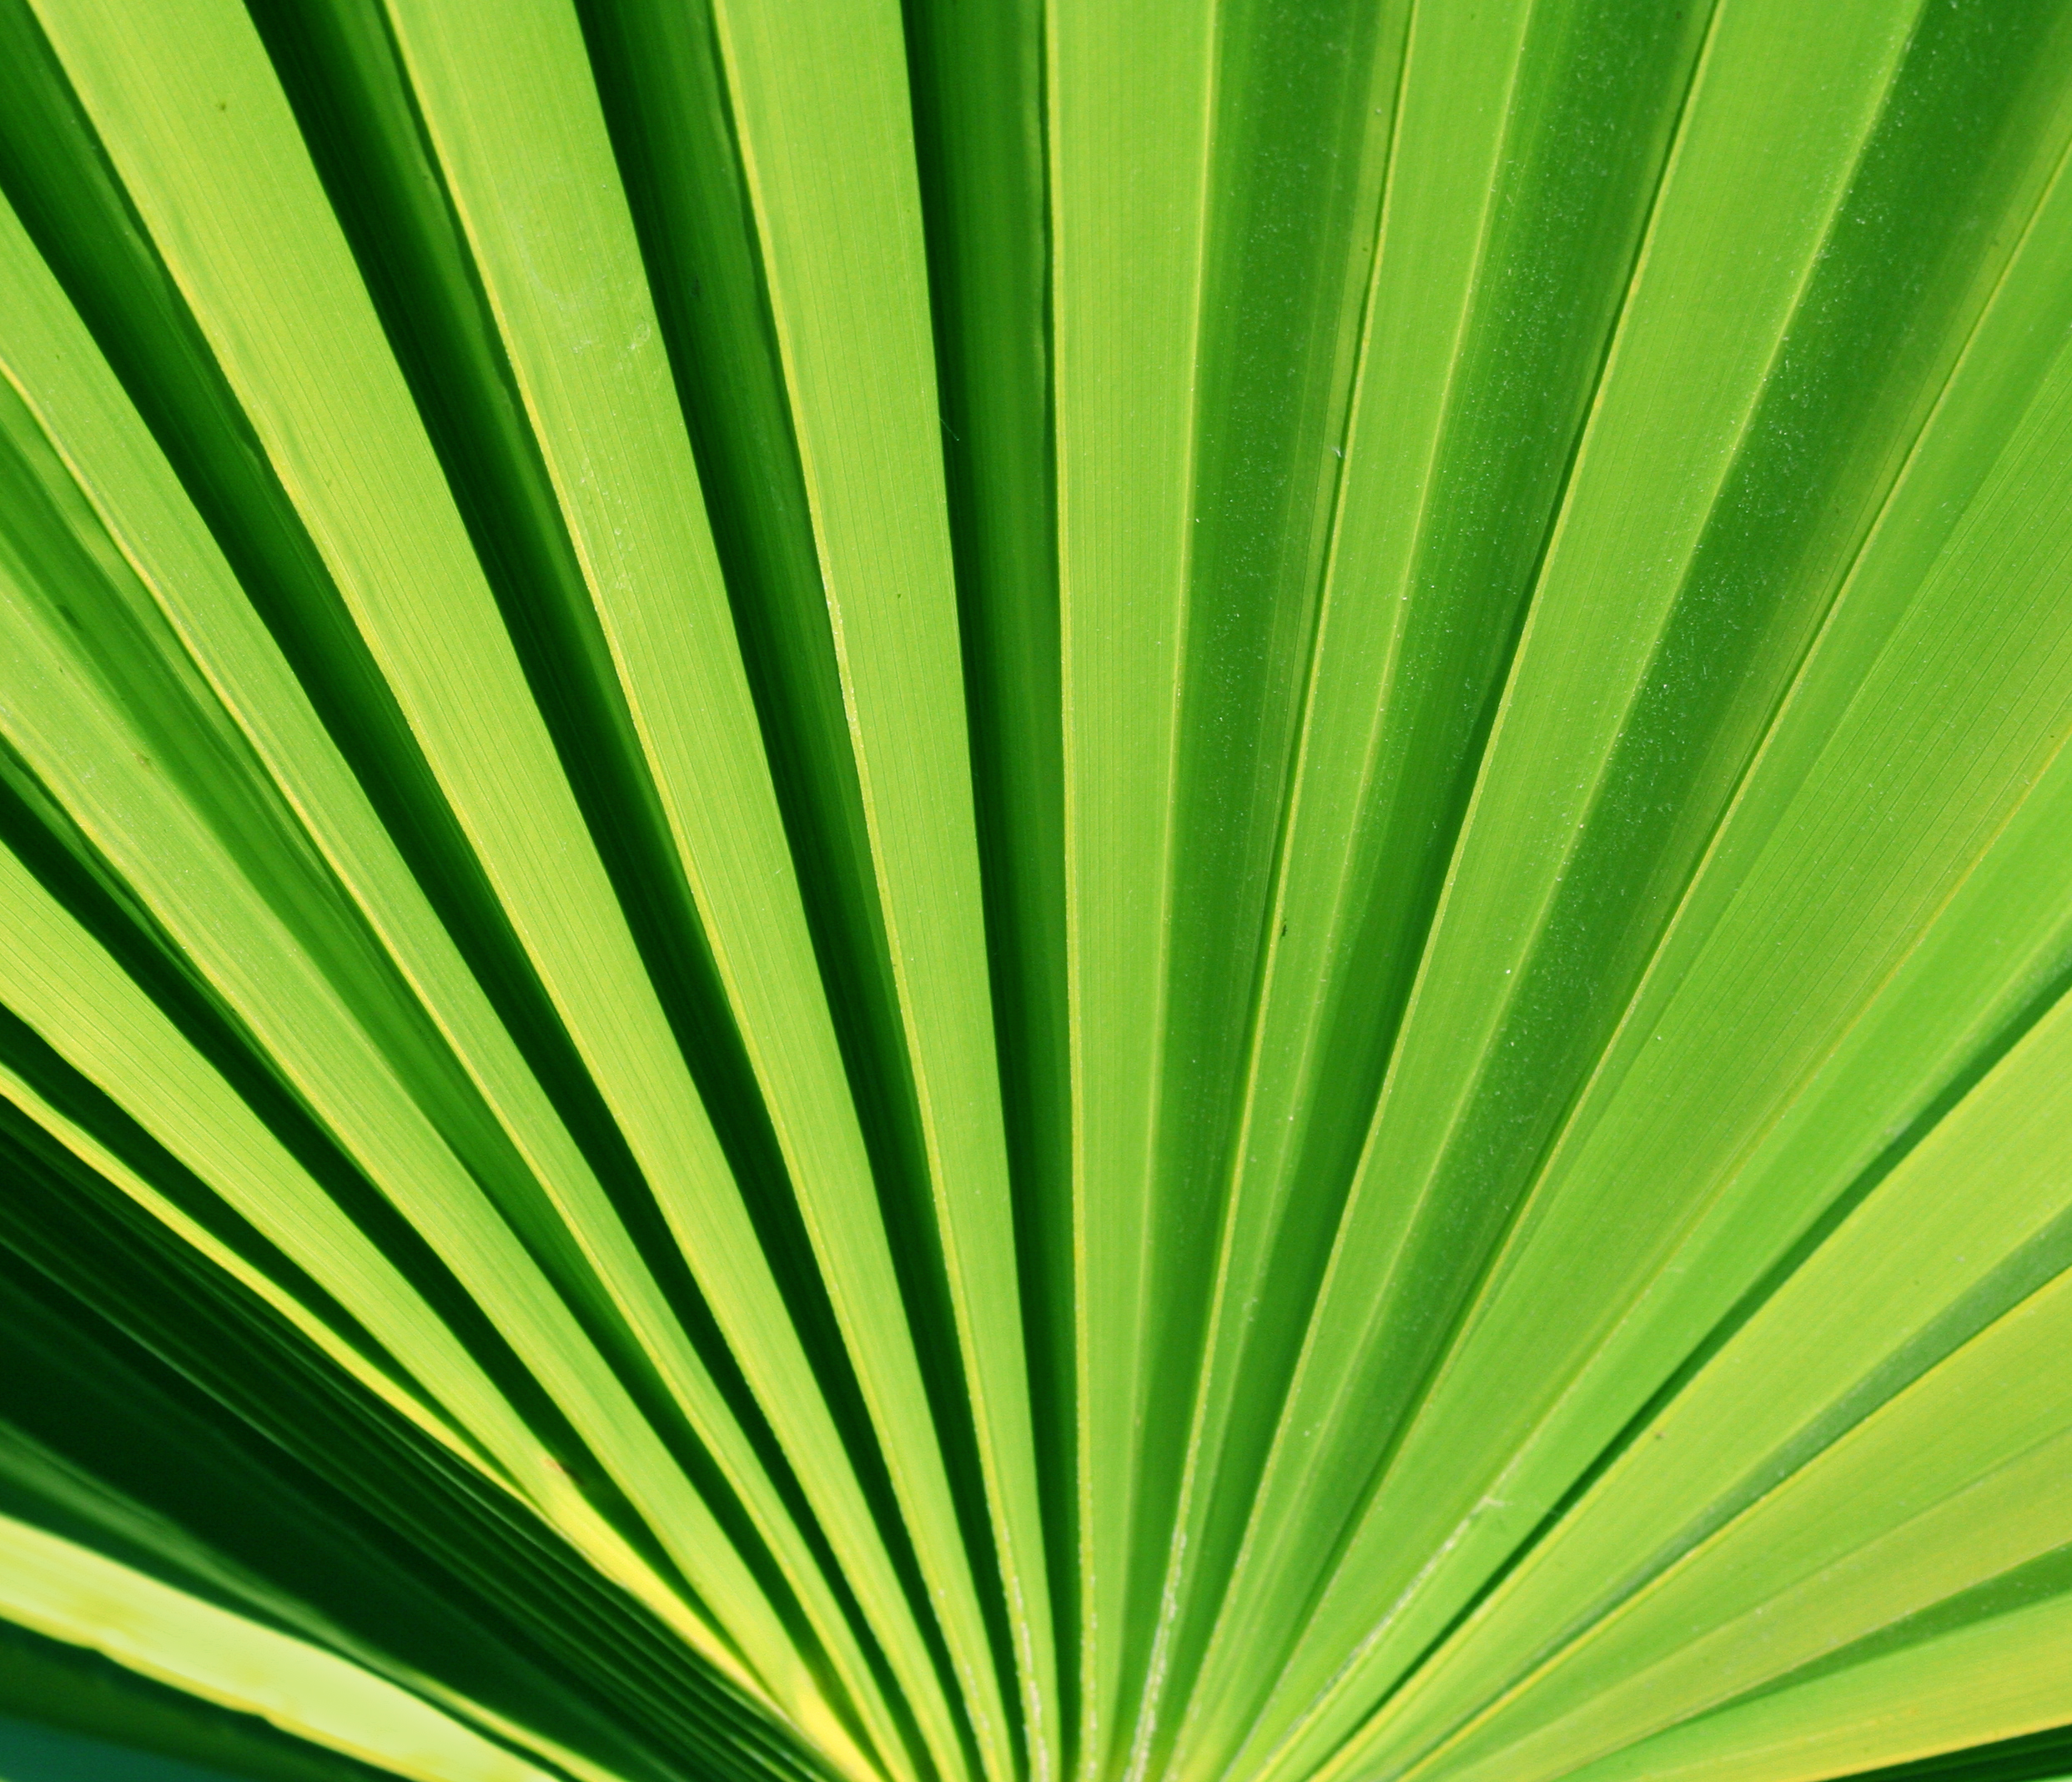 palm leaf texture background image - palm leaf texture background ...